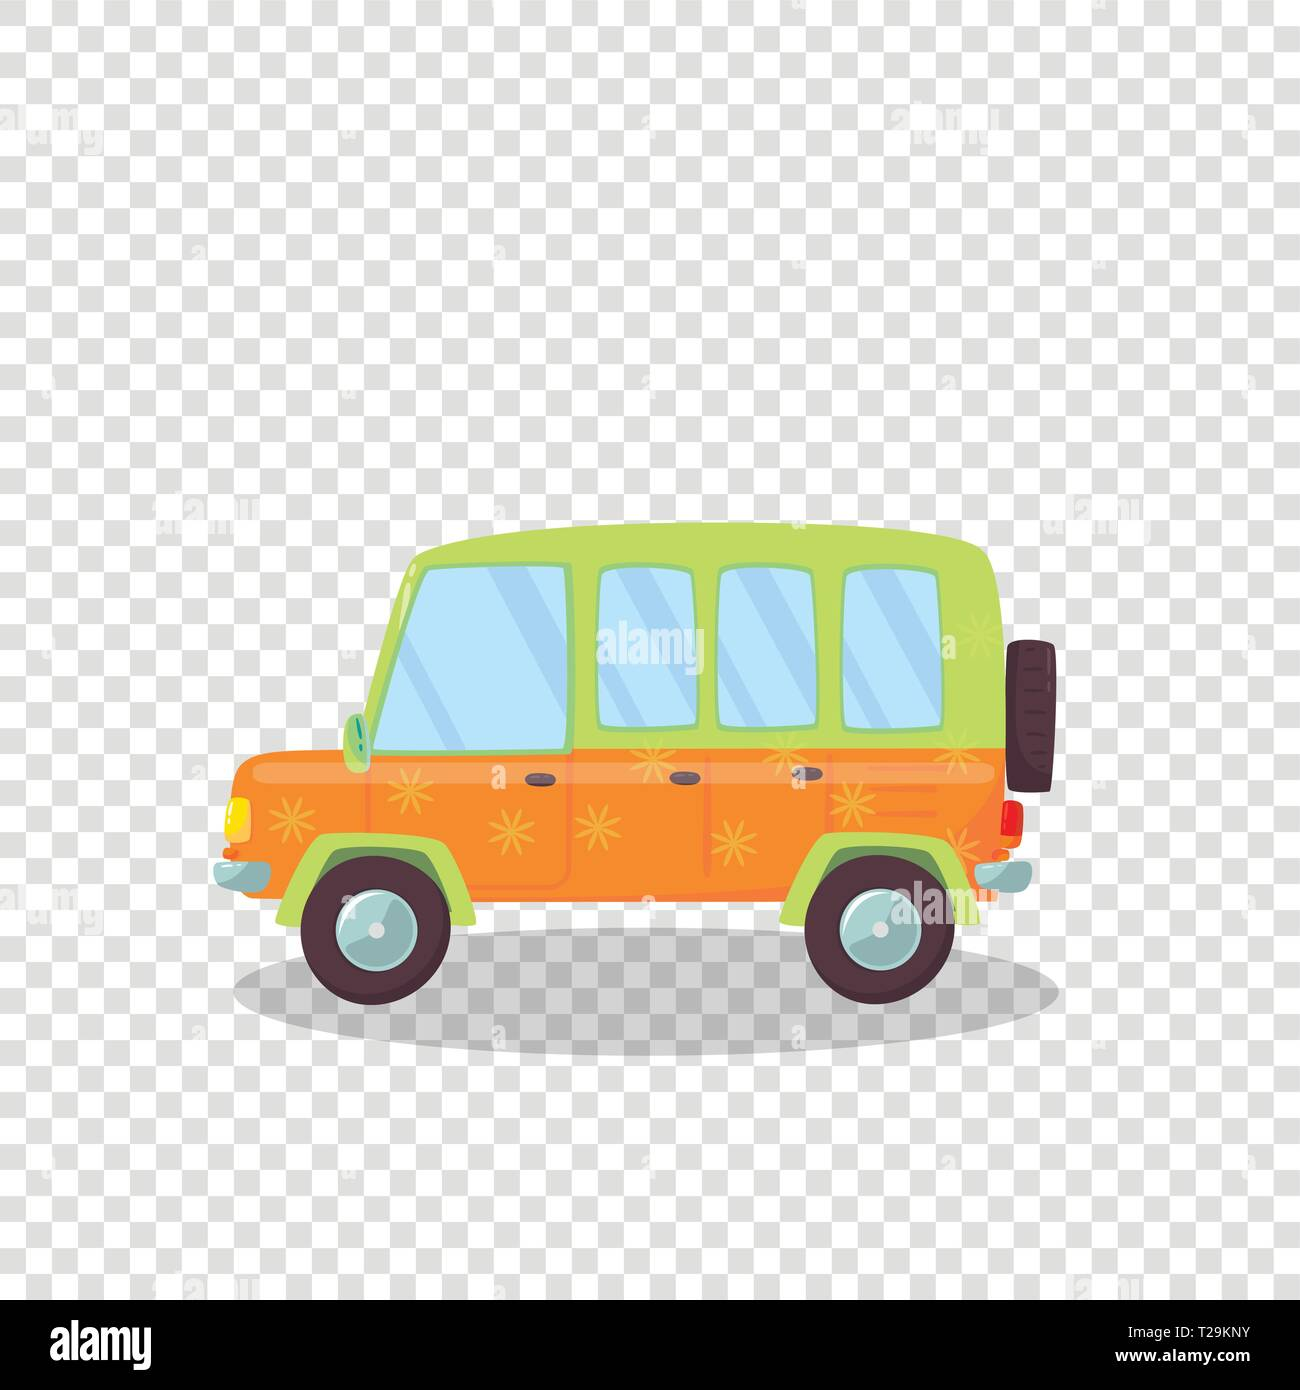 Cute Car with Flowers Ornament and Spare Wheel Isolated on Transparent Background. Side View of Hatchback or Coupe Automobile for Family Traveling. Ca - Stock Vector